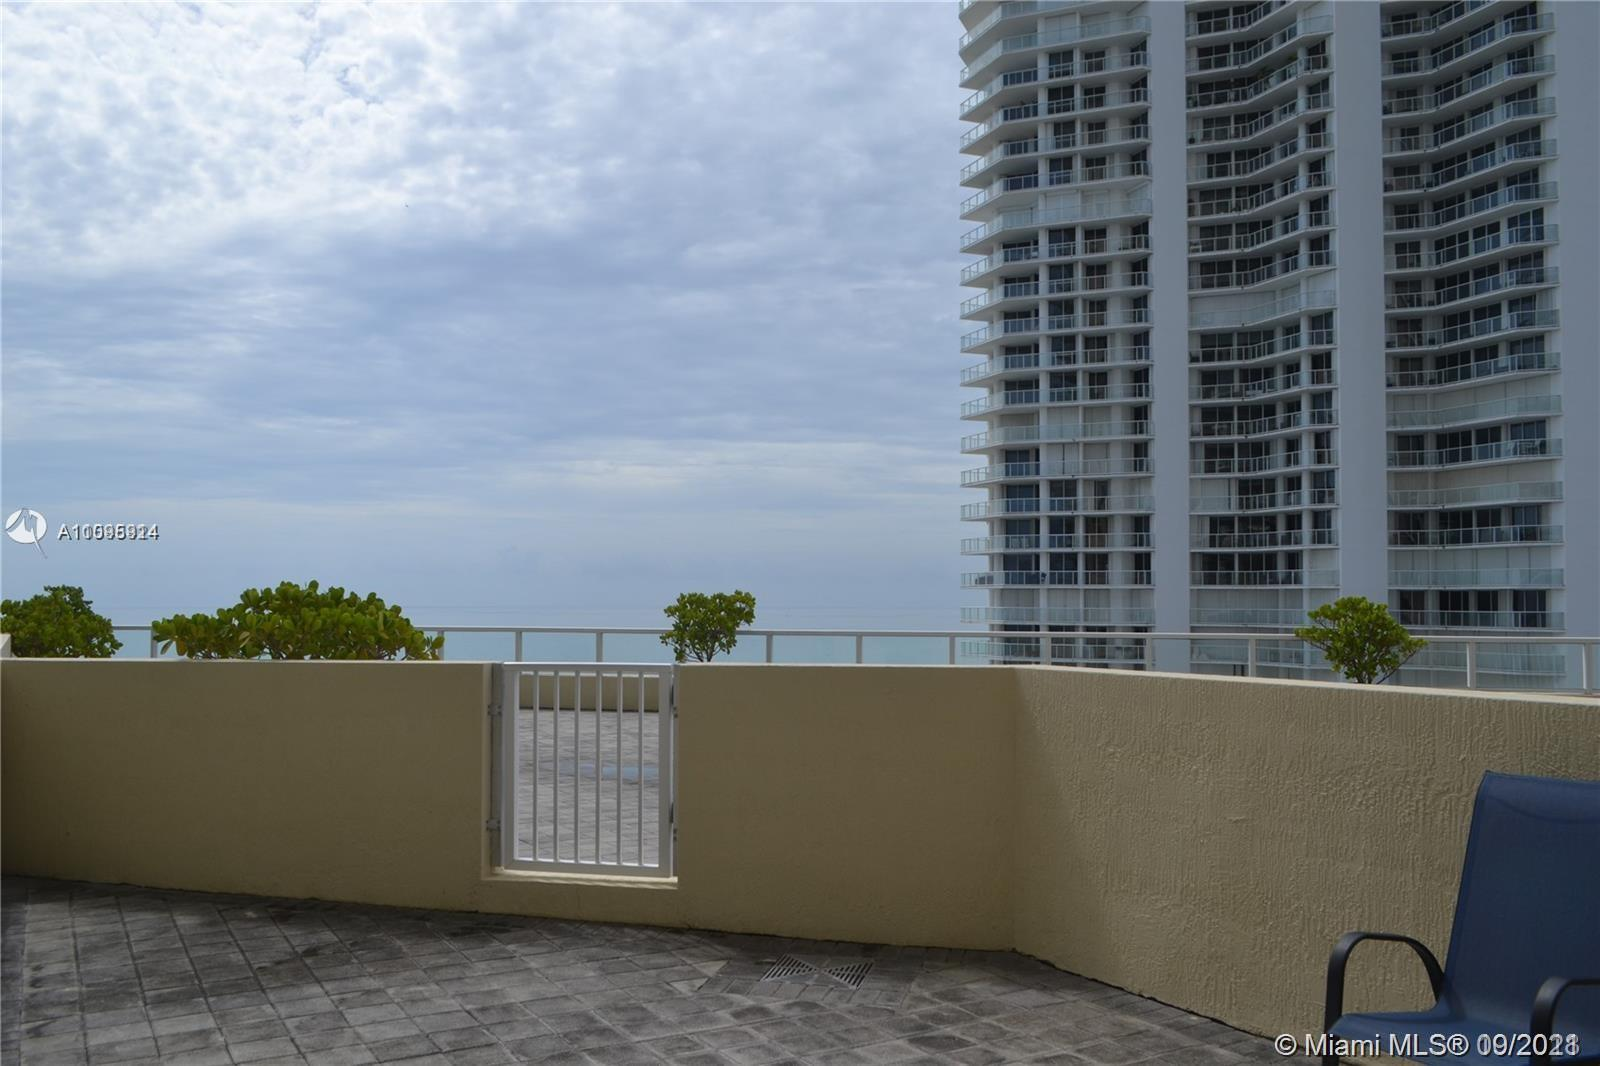 CABANA 01-IMMACULATE-SUNNY SOUTH-EAST EXPOSURE-ENJOY SUNRISES AND SUNSETS FROM YOUR GATED PATIO-(OCE